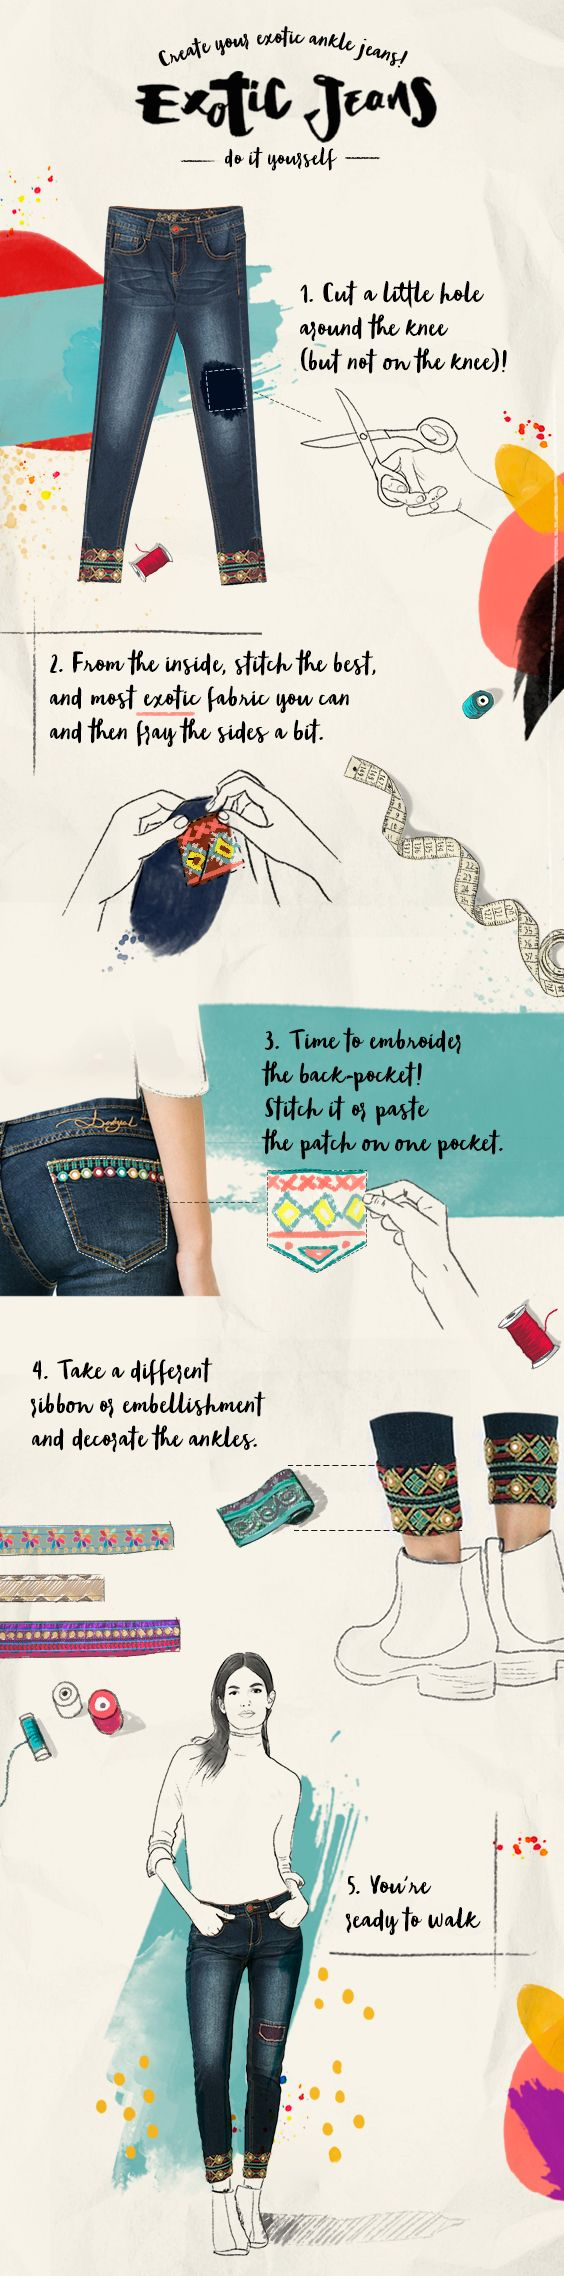 Tips for creating jeans to suit your style Made with love. This is how the new Exotic Jeans collection is created. The story of these jeans started in an I